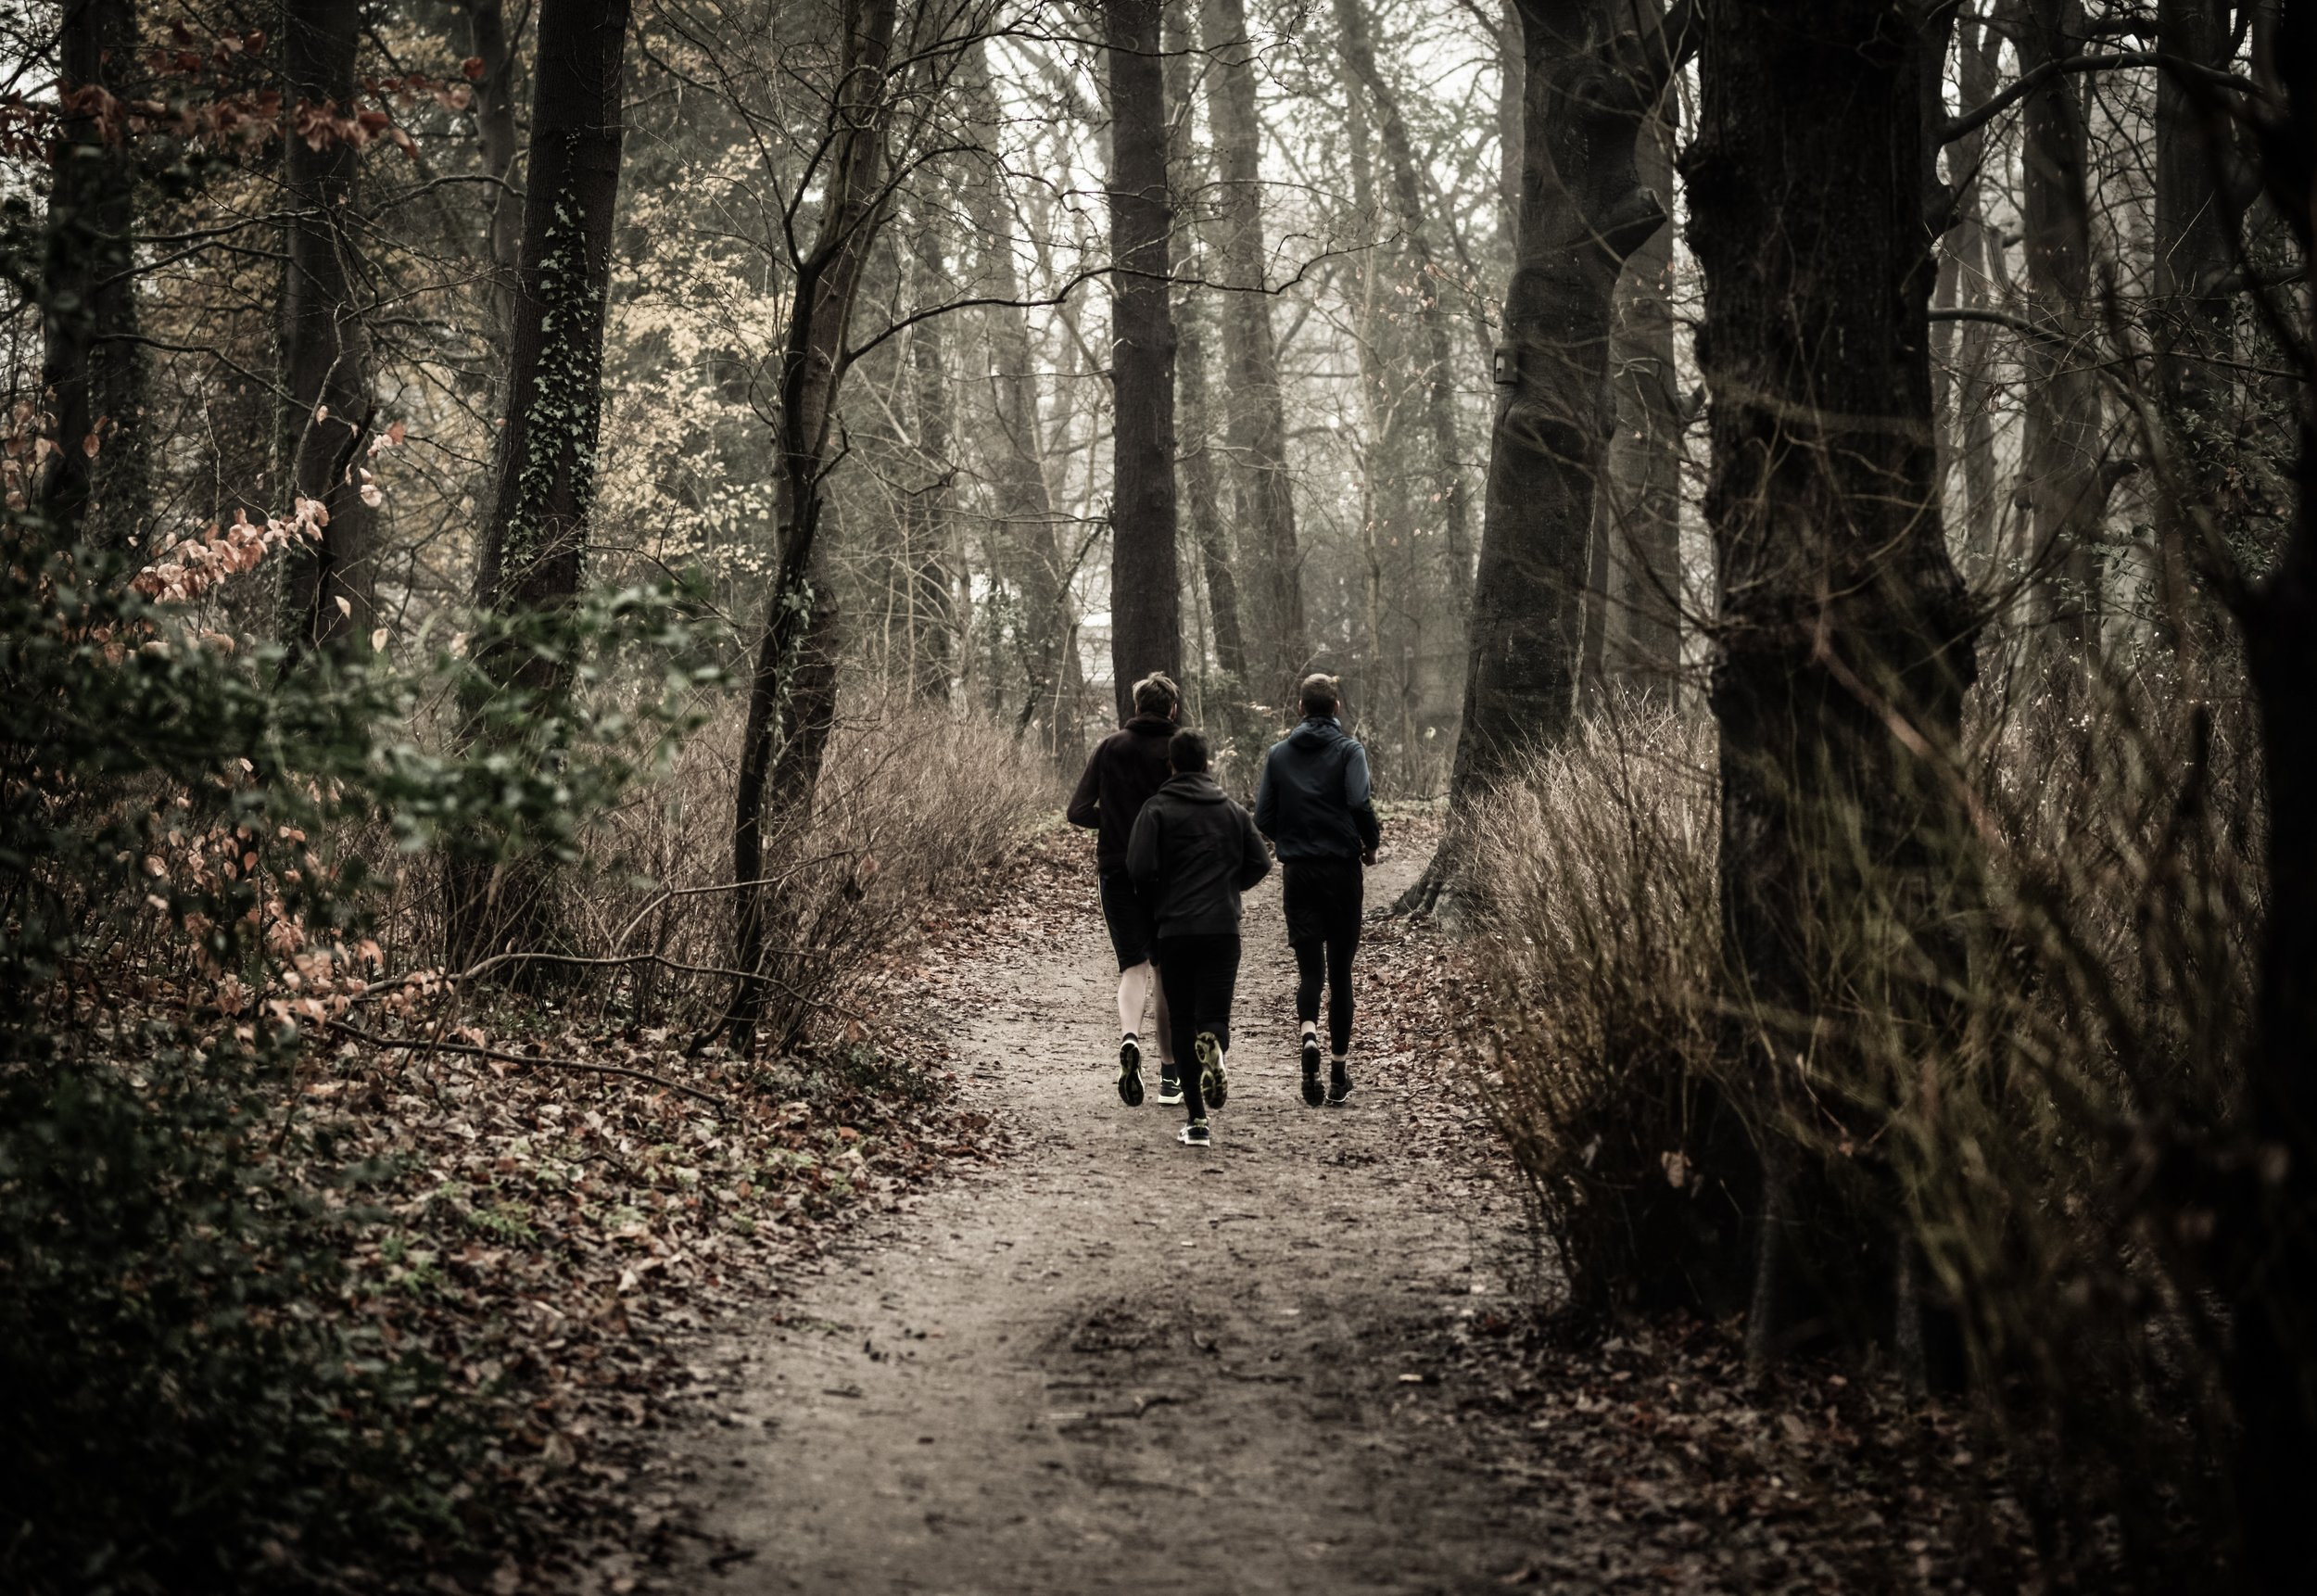 Runners in woods on path.jpg